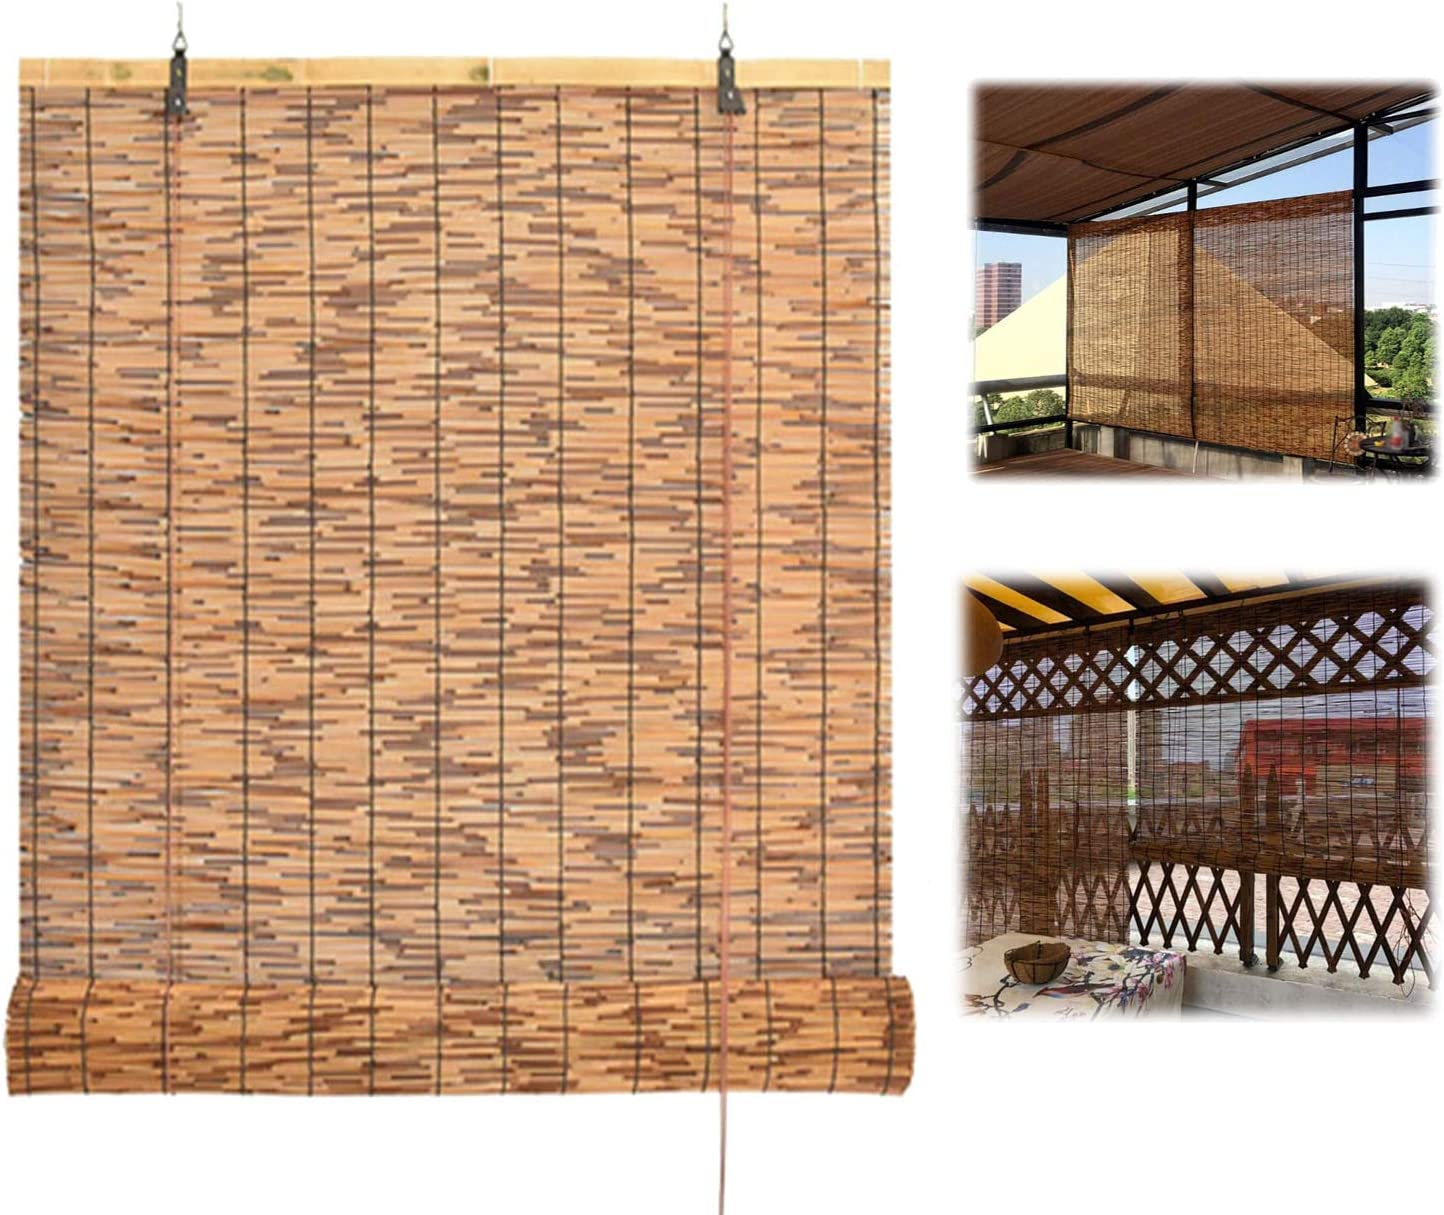 Vicareer Mail order 100% quality warranty Roll-up Reed Shade Patio Roller Shades Blinds Outdoor